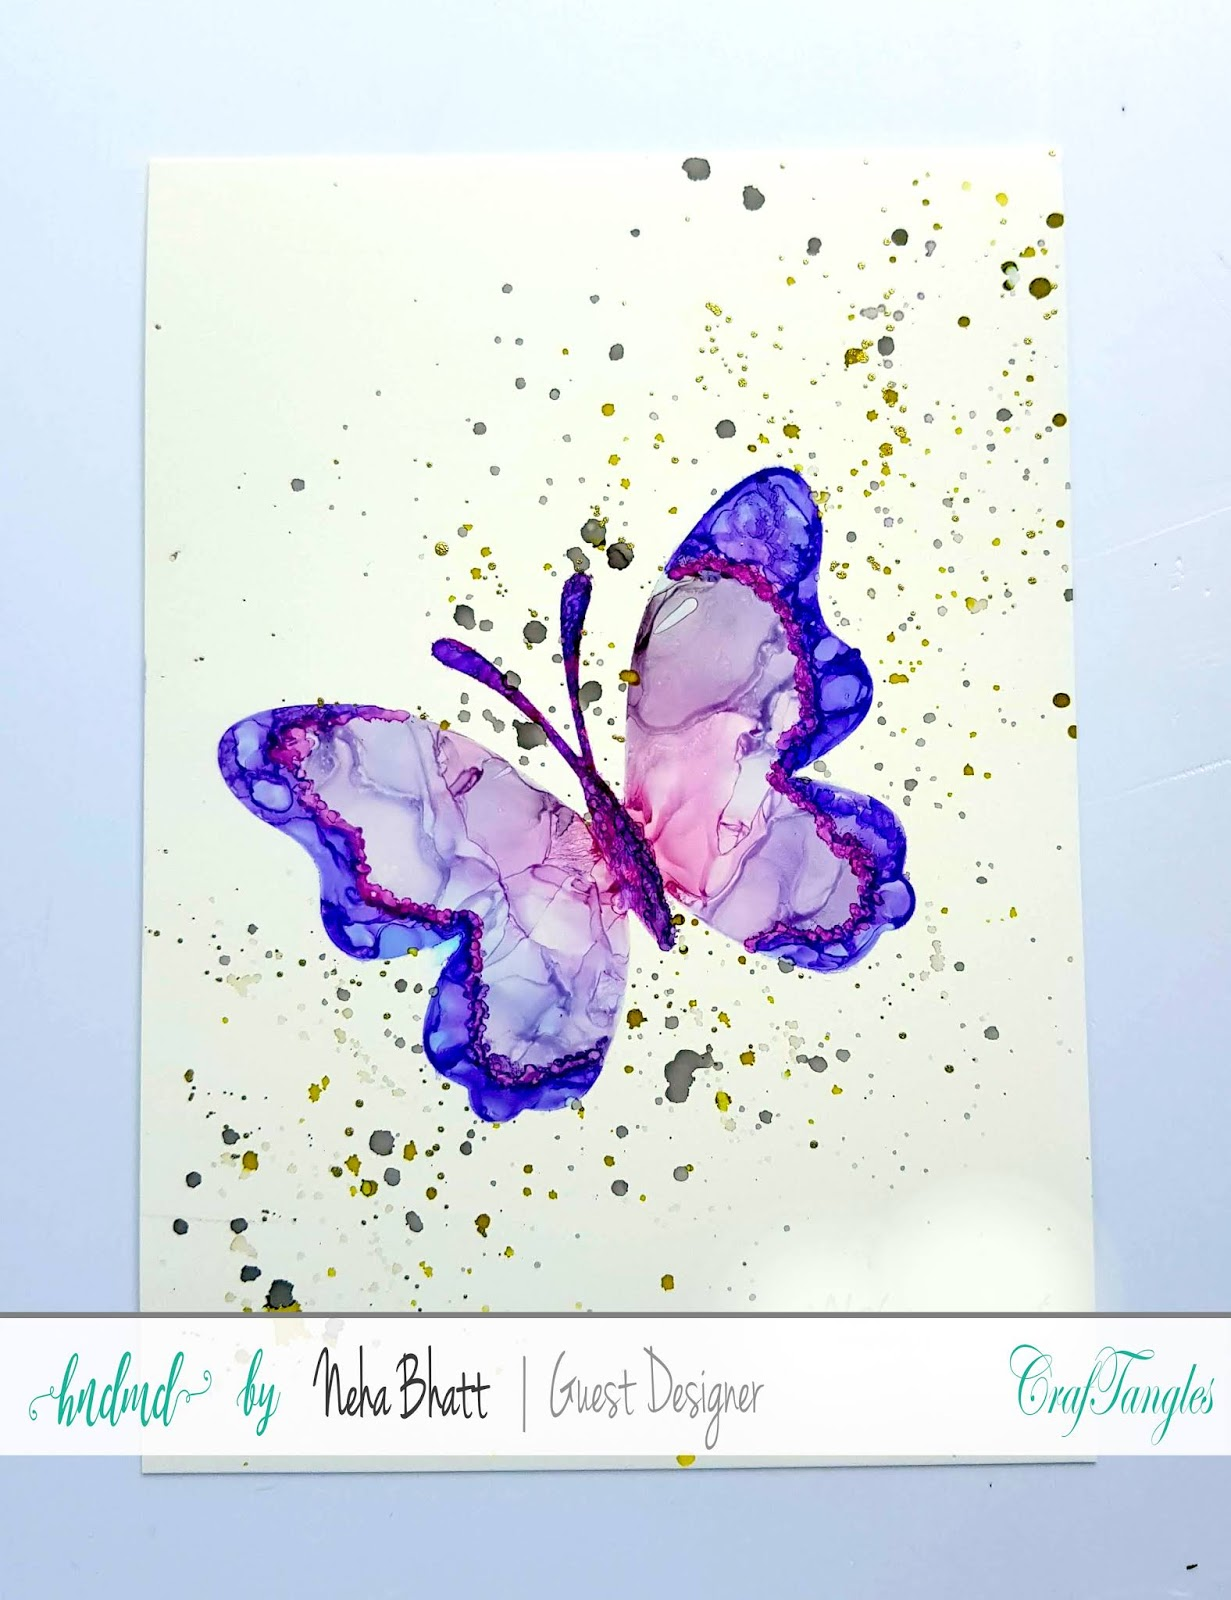 Some experiments with CrafTangles alcohol ink papers by Neha Bhatt [Periwinkle Creations] 18